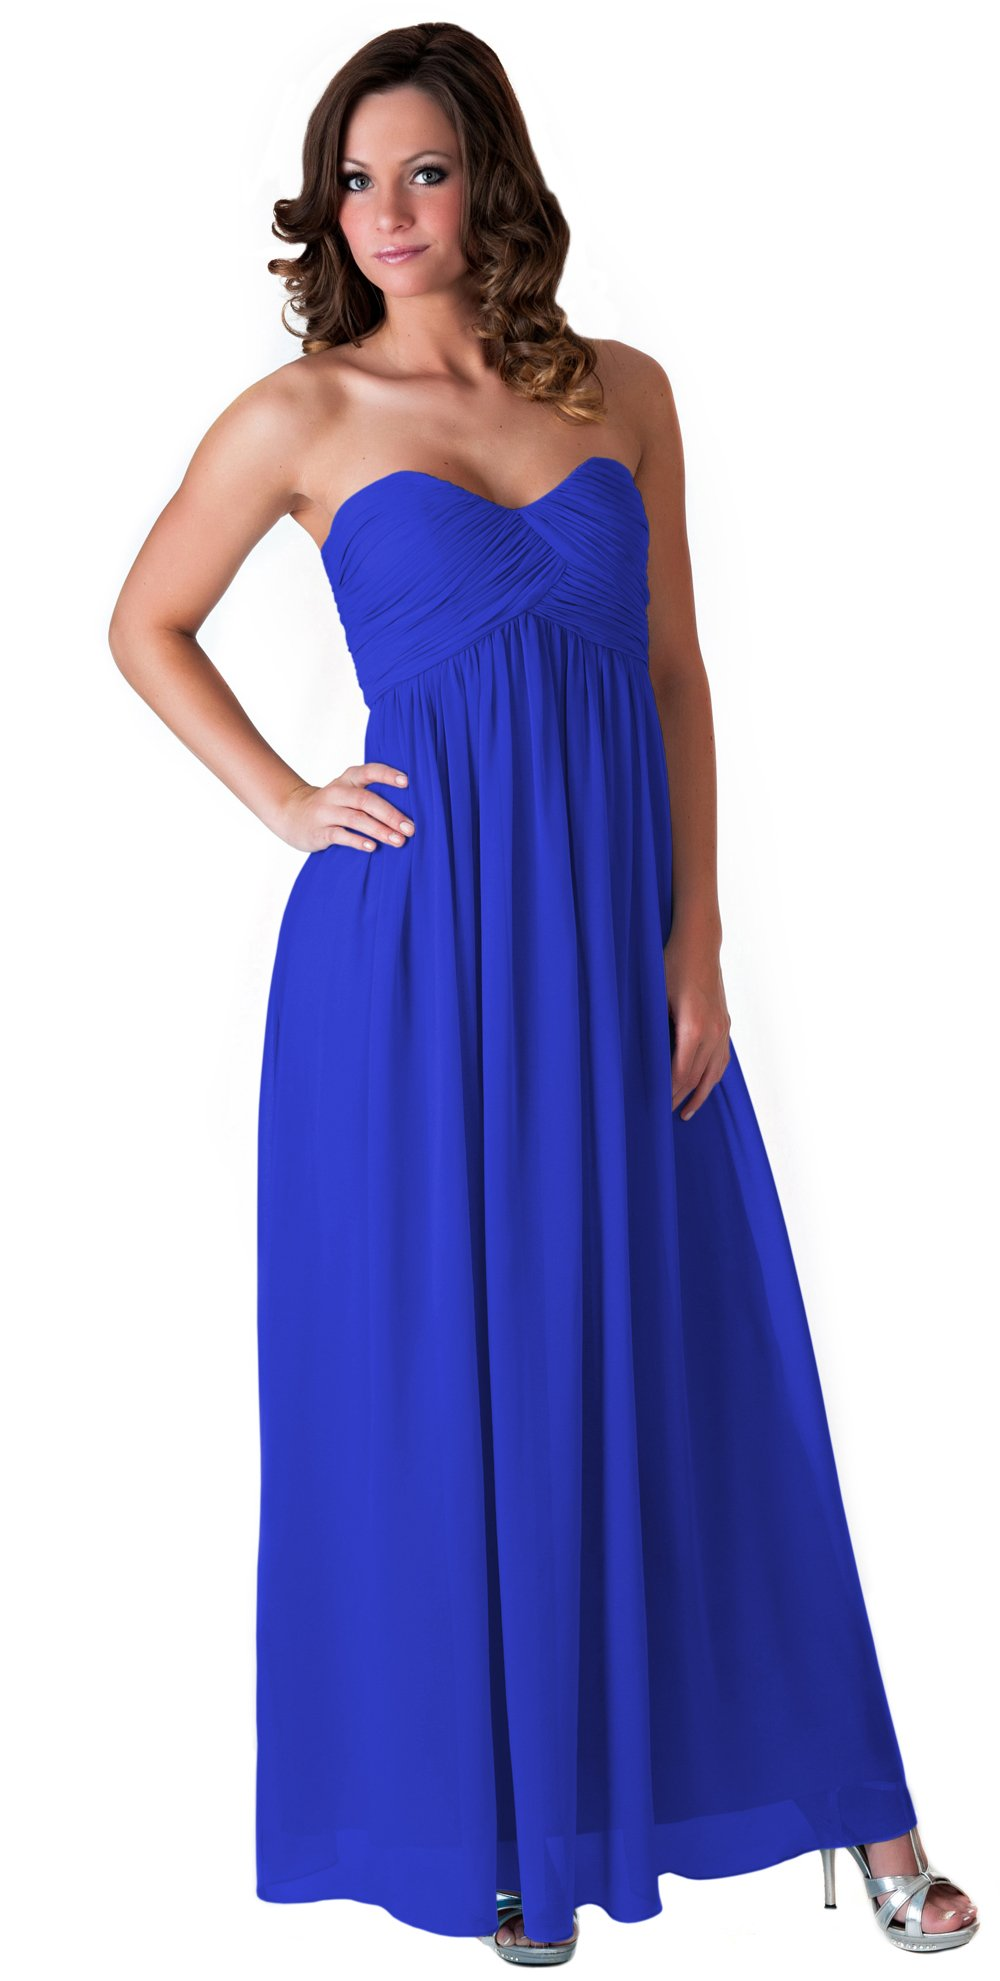 Faship Womens Long Evening Gown Bridesmaid Wedding Party Prom Formal Dress,Royal Blue,12